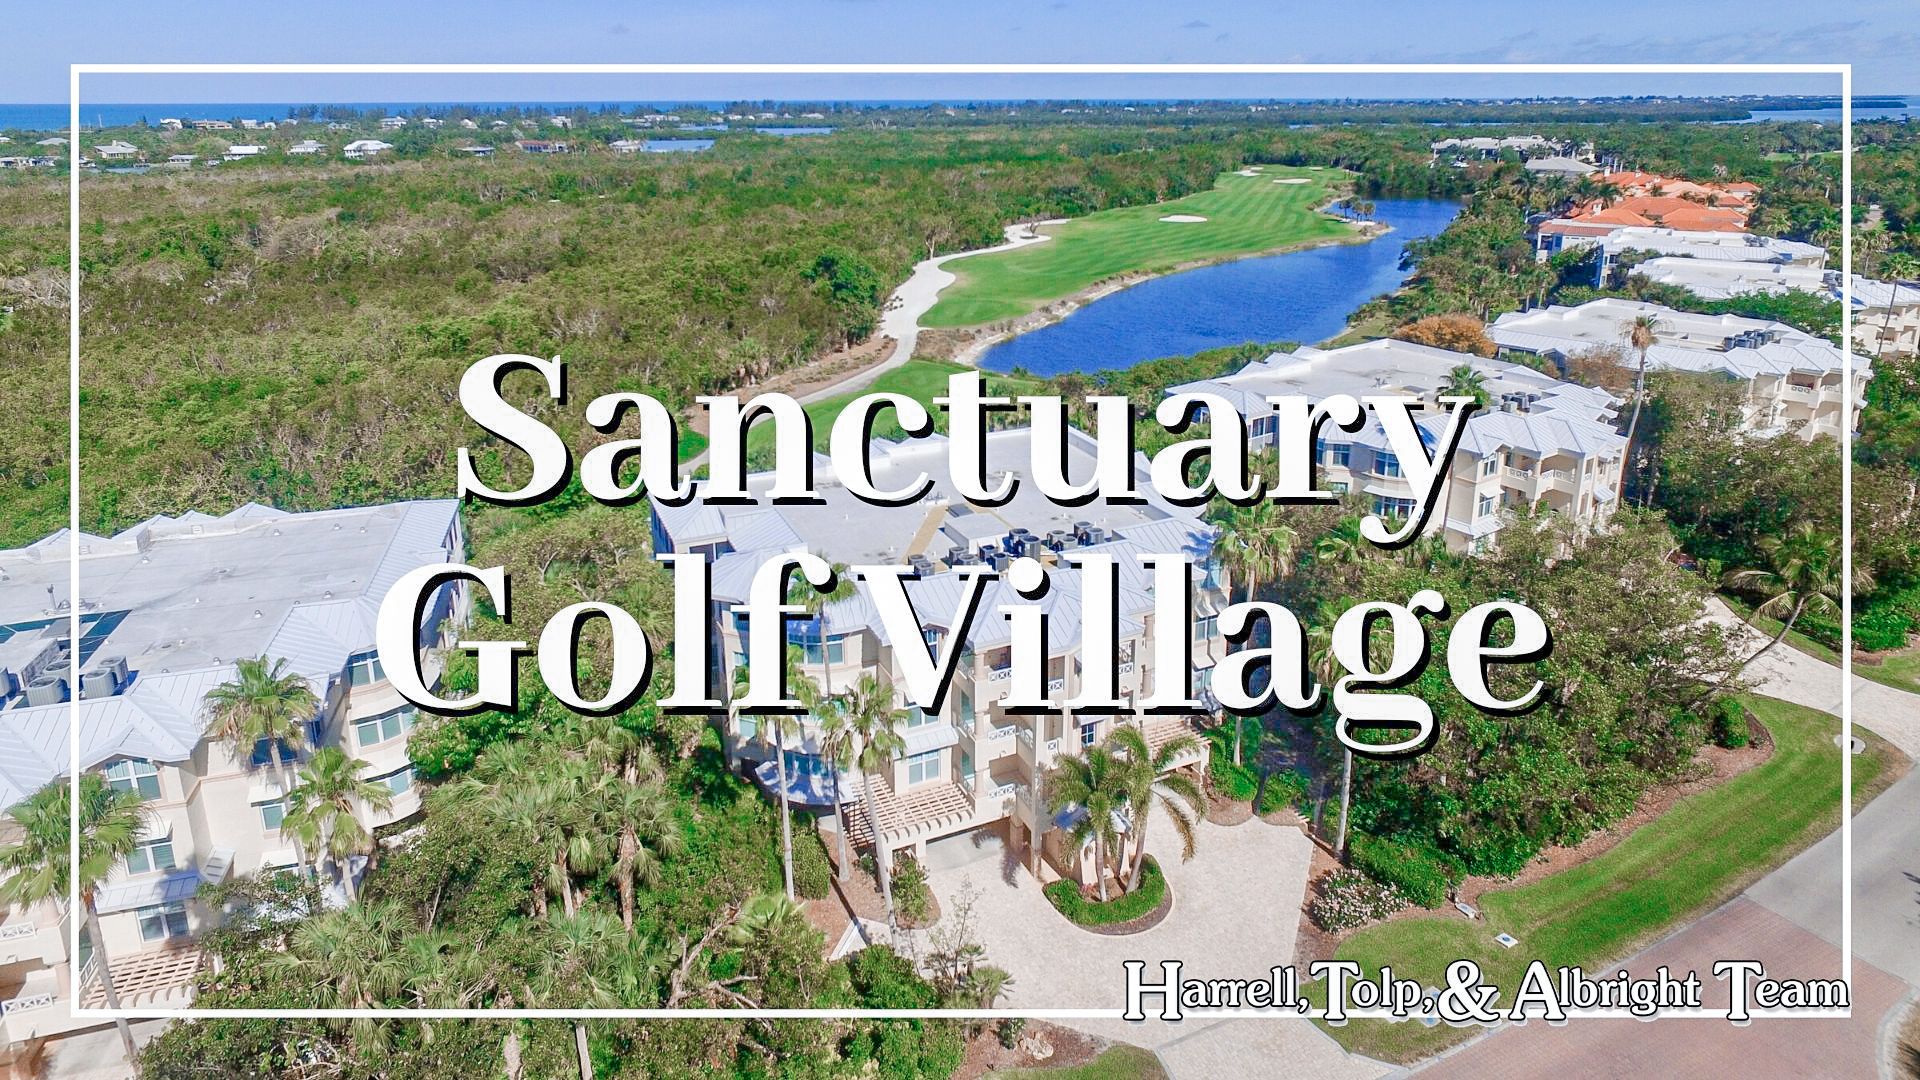 Sanctuary Golf Village